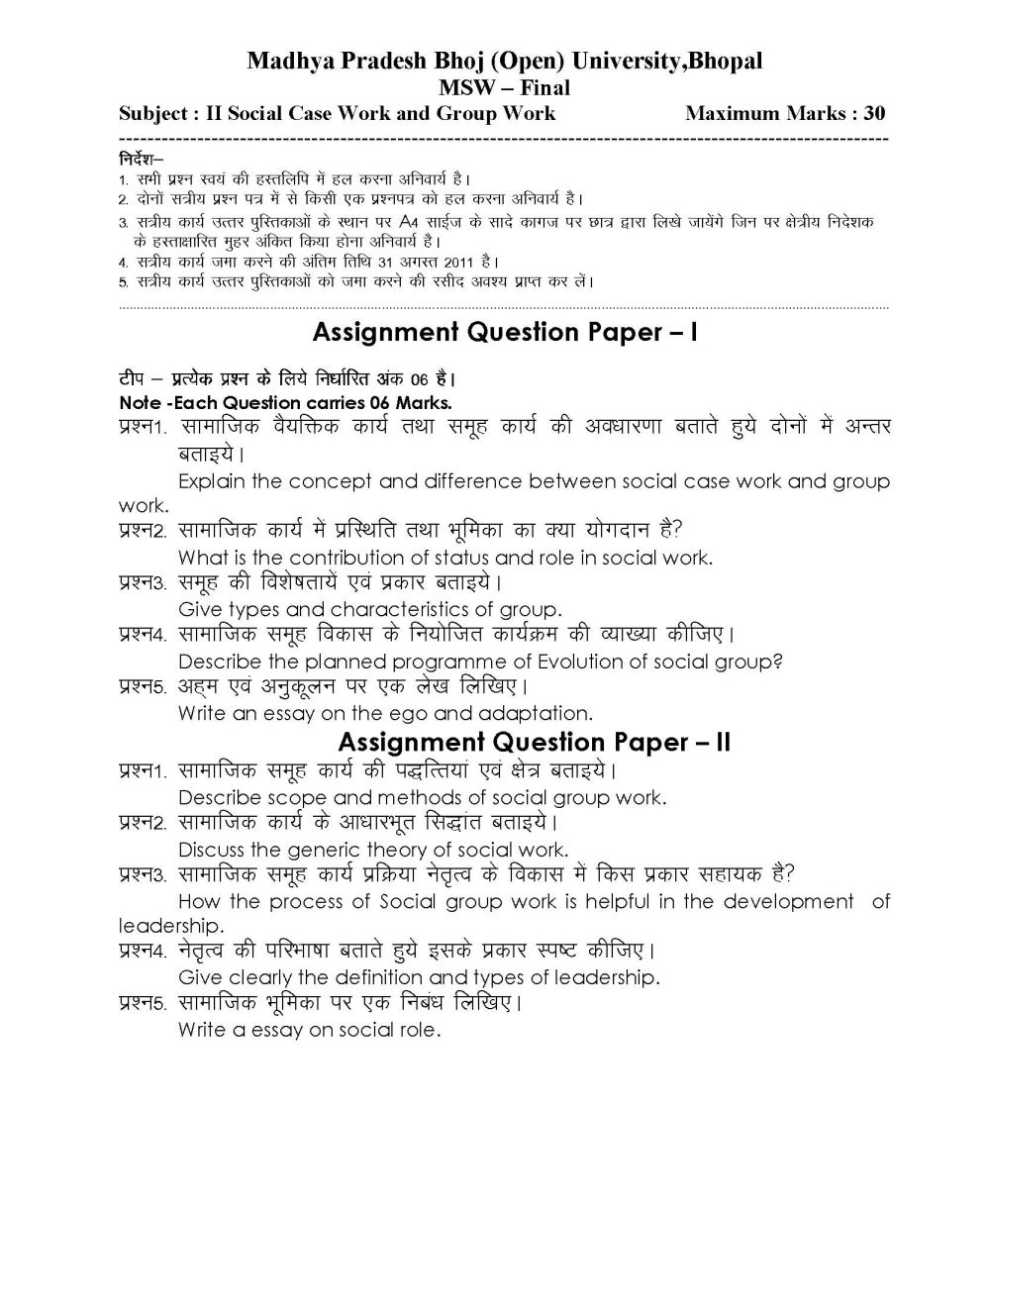 020 Bhoj University Bhopal Msw Leadership Essays Unique Essay Examples Personal Philosophy Paper Mba College Full